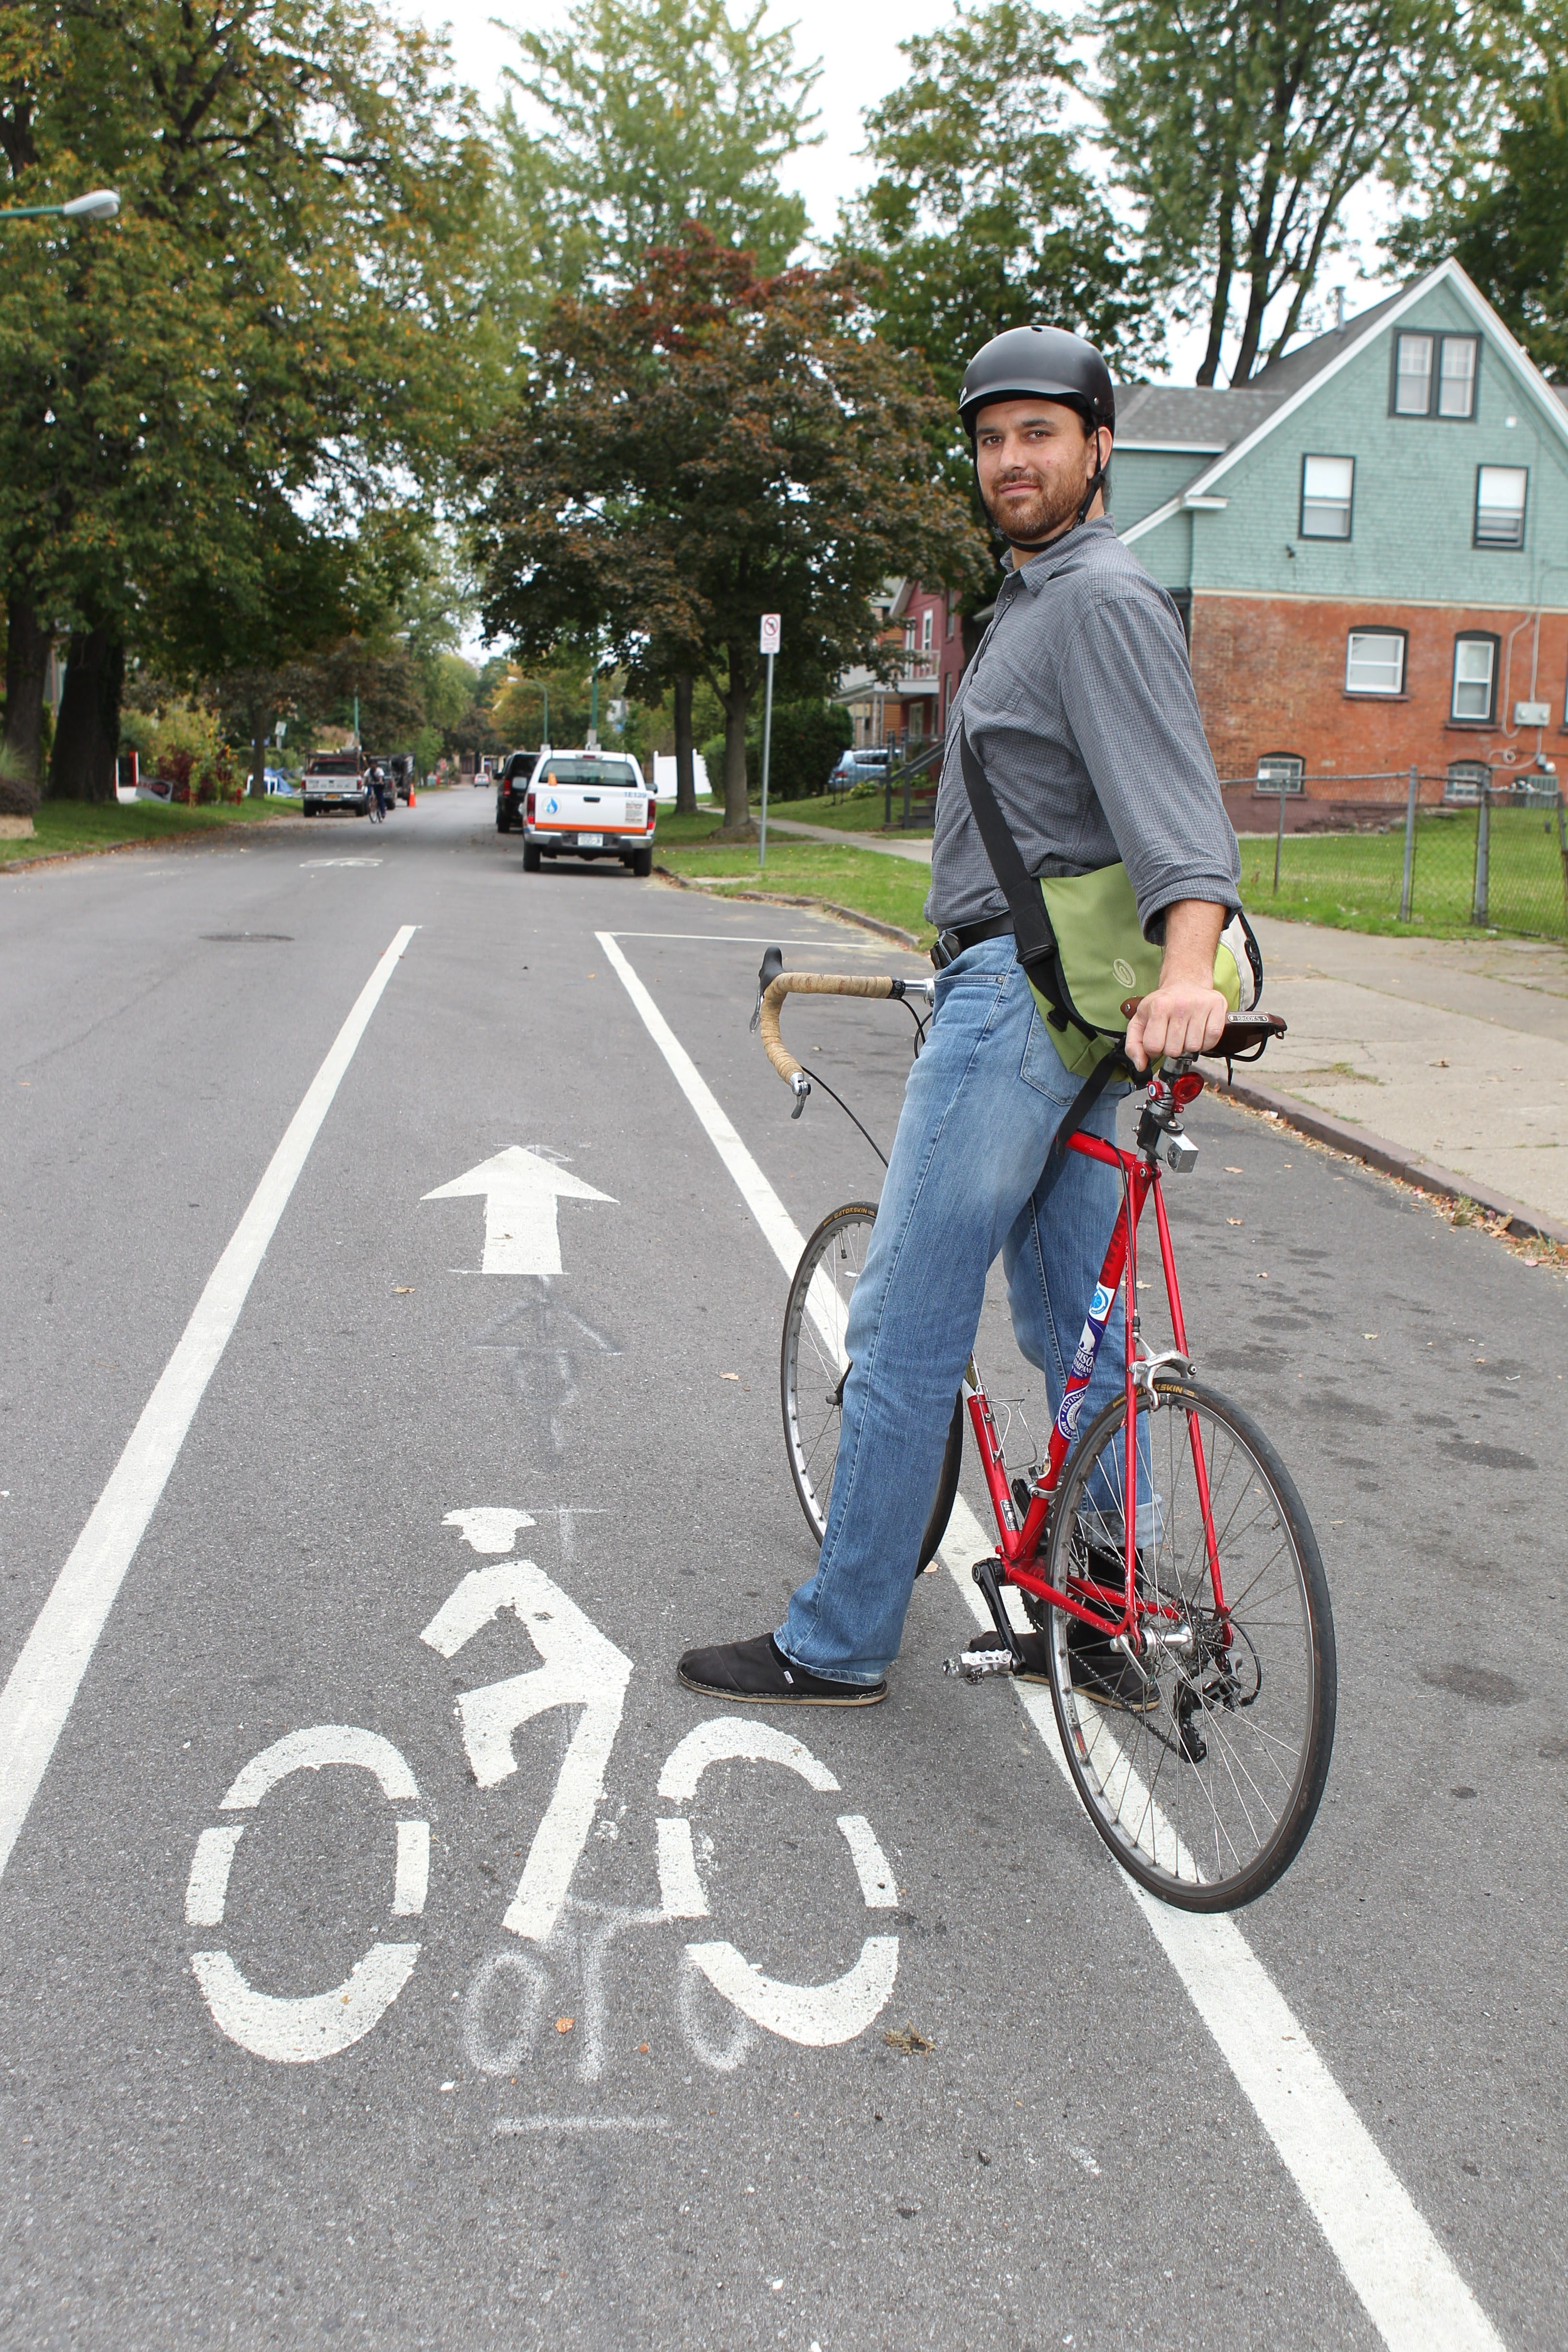 GObike Buffalo Executive Director Justin Booth rarely uses his car. He says he always wears a helmet and clothing that ensures drivers can easily see him.